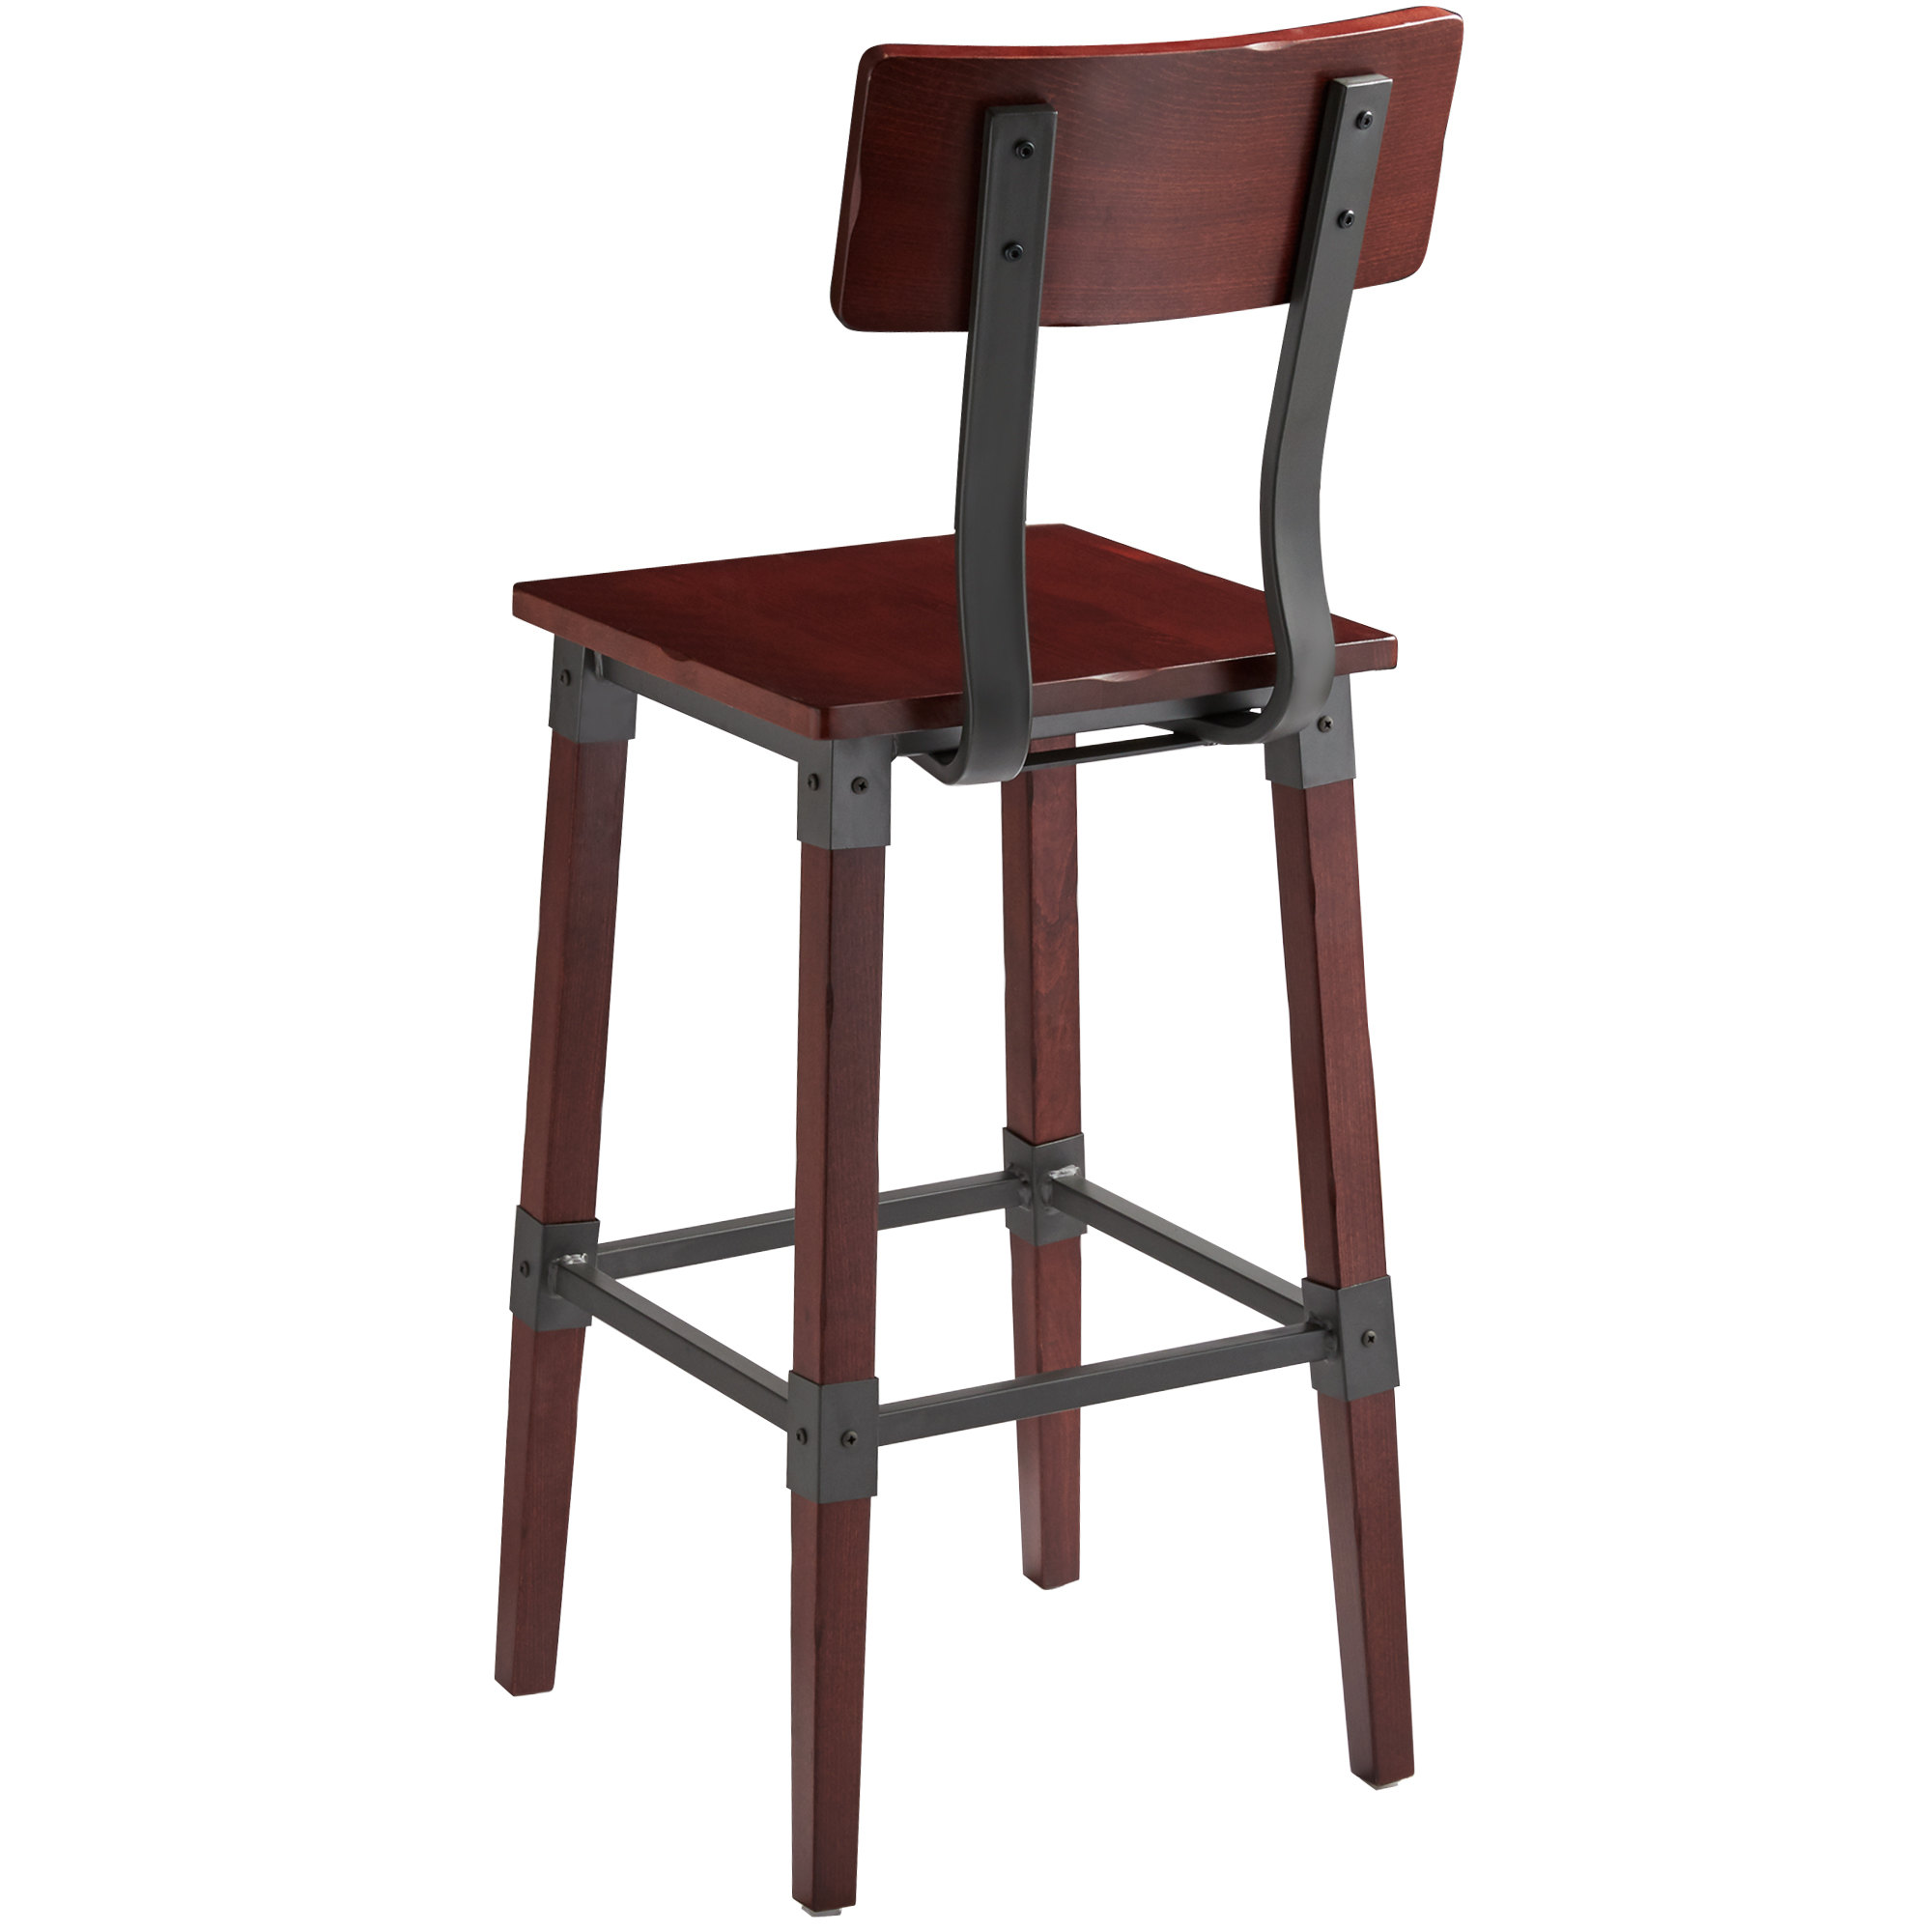 #79 - Rustic Industrial Style Bar Height Chair with Mahogany Finish